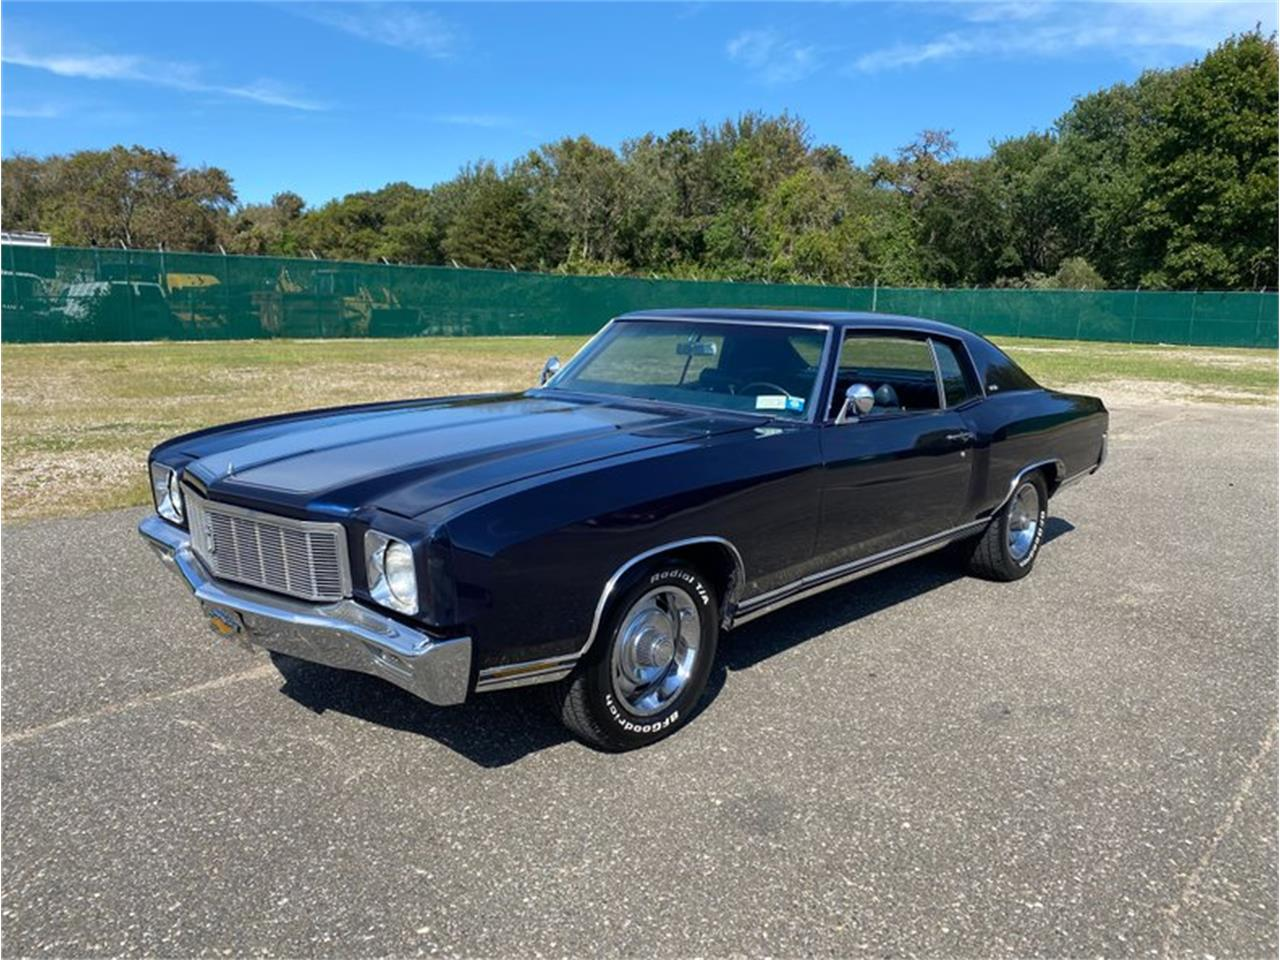 1971 Chevrolet Monte Carlo (CC-1385584) for sale in West Babylon, New York